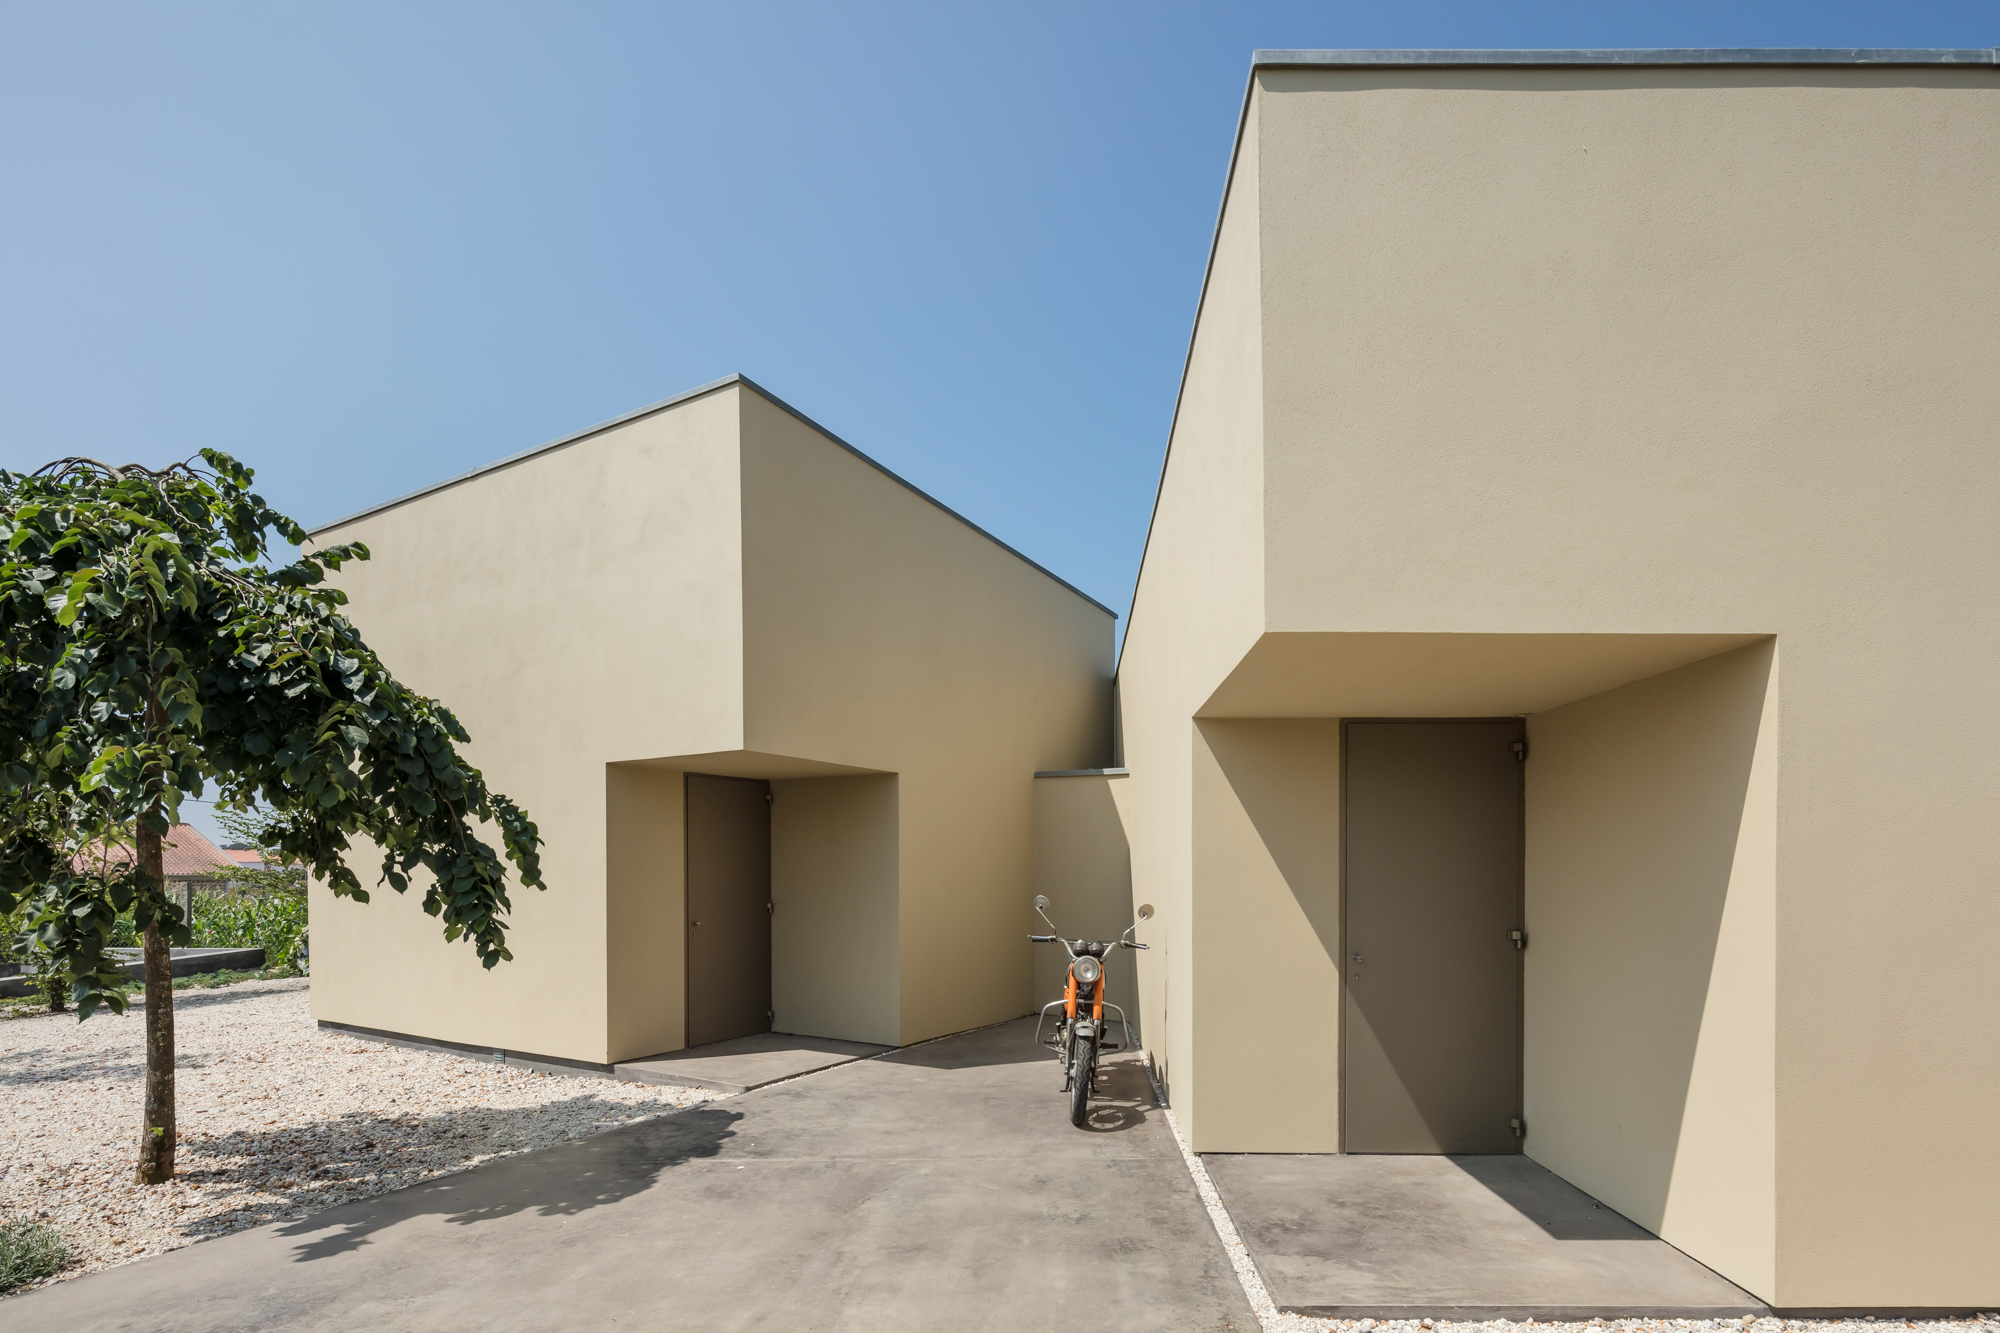 Office Building in Arada / Nelson Resende